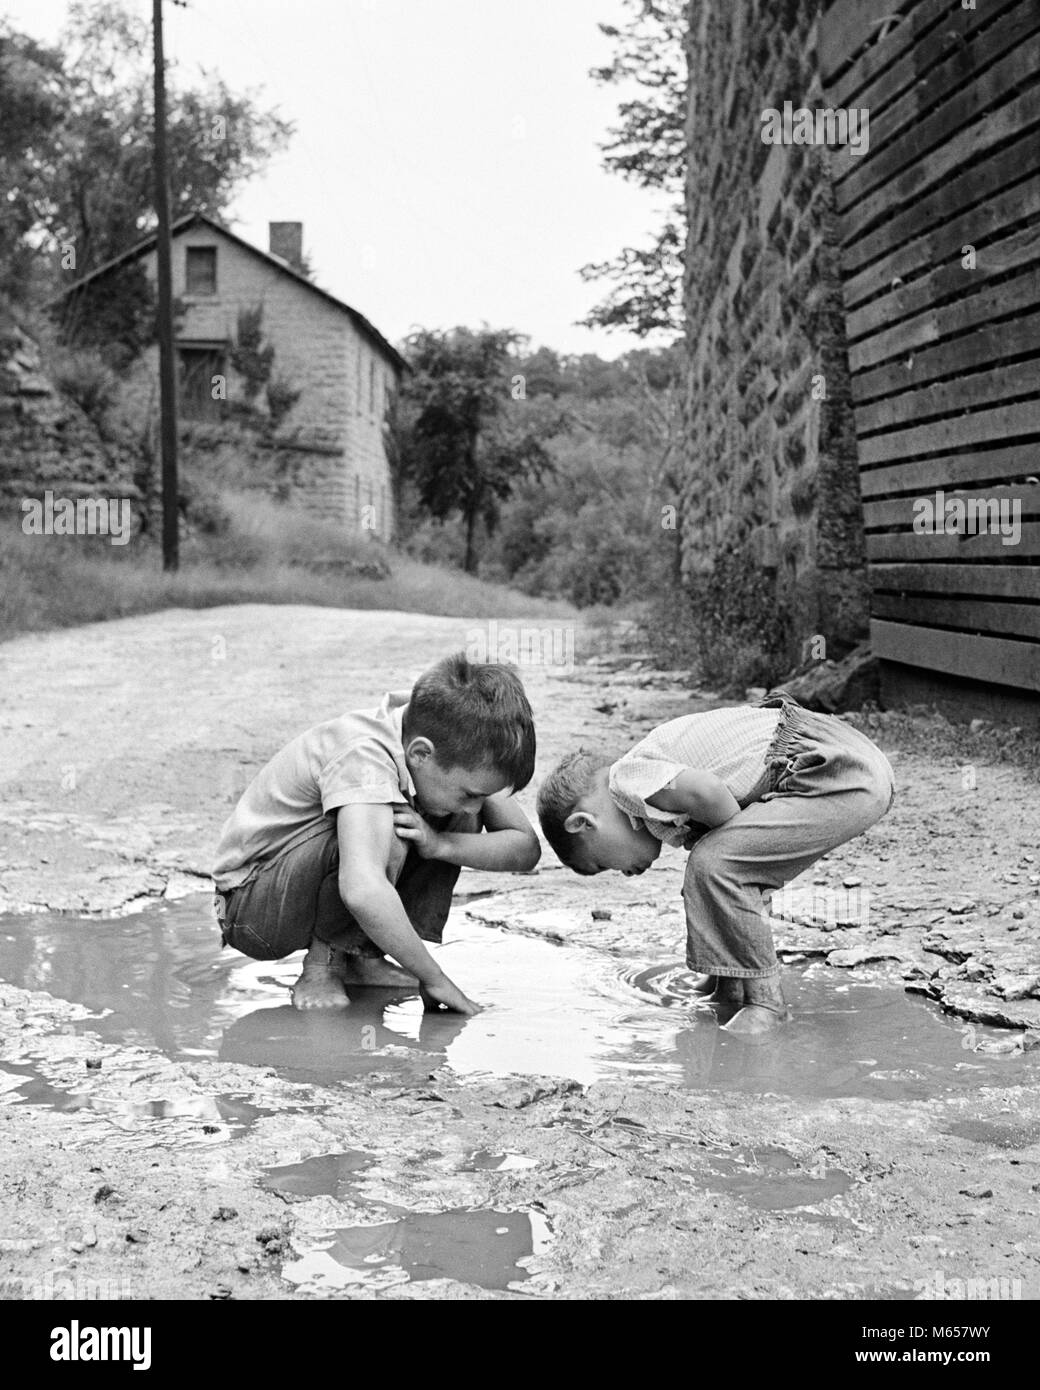 1950s 1960s TWO BOYS BENDING LOOKING AT PLAYING IN MUD PUDDLE - j11747 HAR001 HARS INSPIRATION UNITED STATES OF - Stock Image